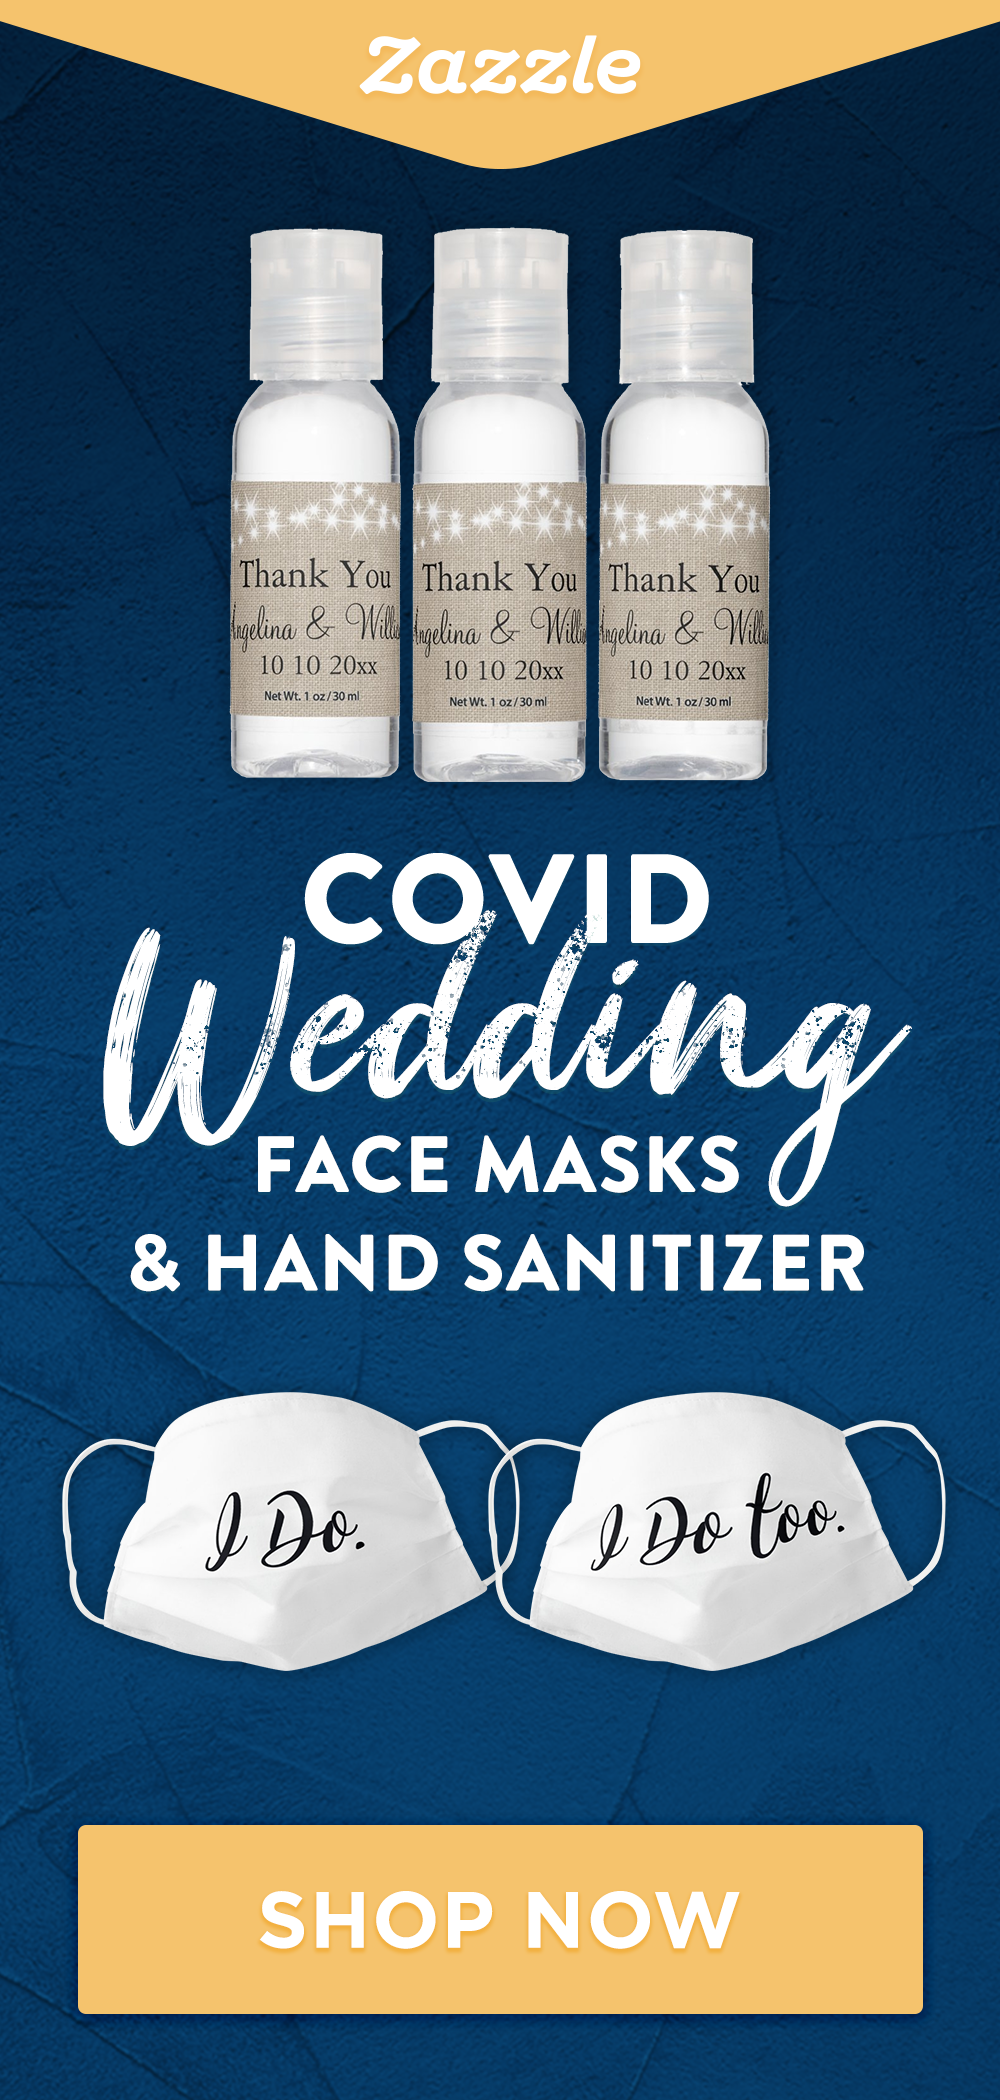 Shop Zazzle for all things wedding. Whether you're planning a large gathering or a small backyard wedding, browse thousands of invitations and products for a beautiful and safe wedding. Explore our selection of save the dates, face masks, hand sanitizer, bridesmaids gifts, decor and more.